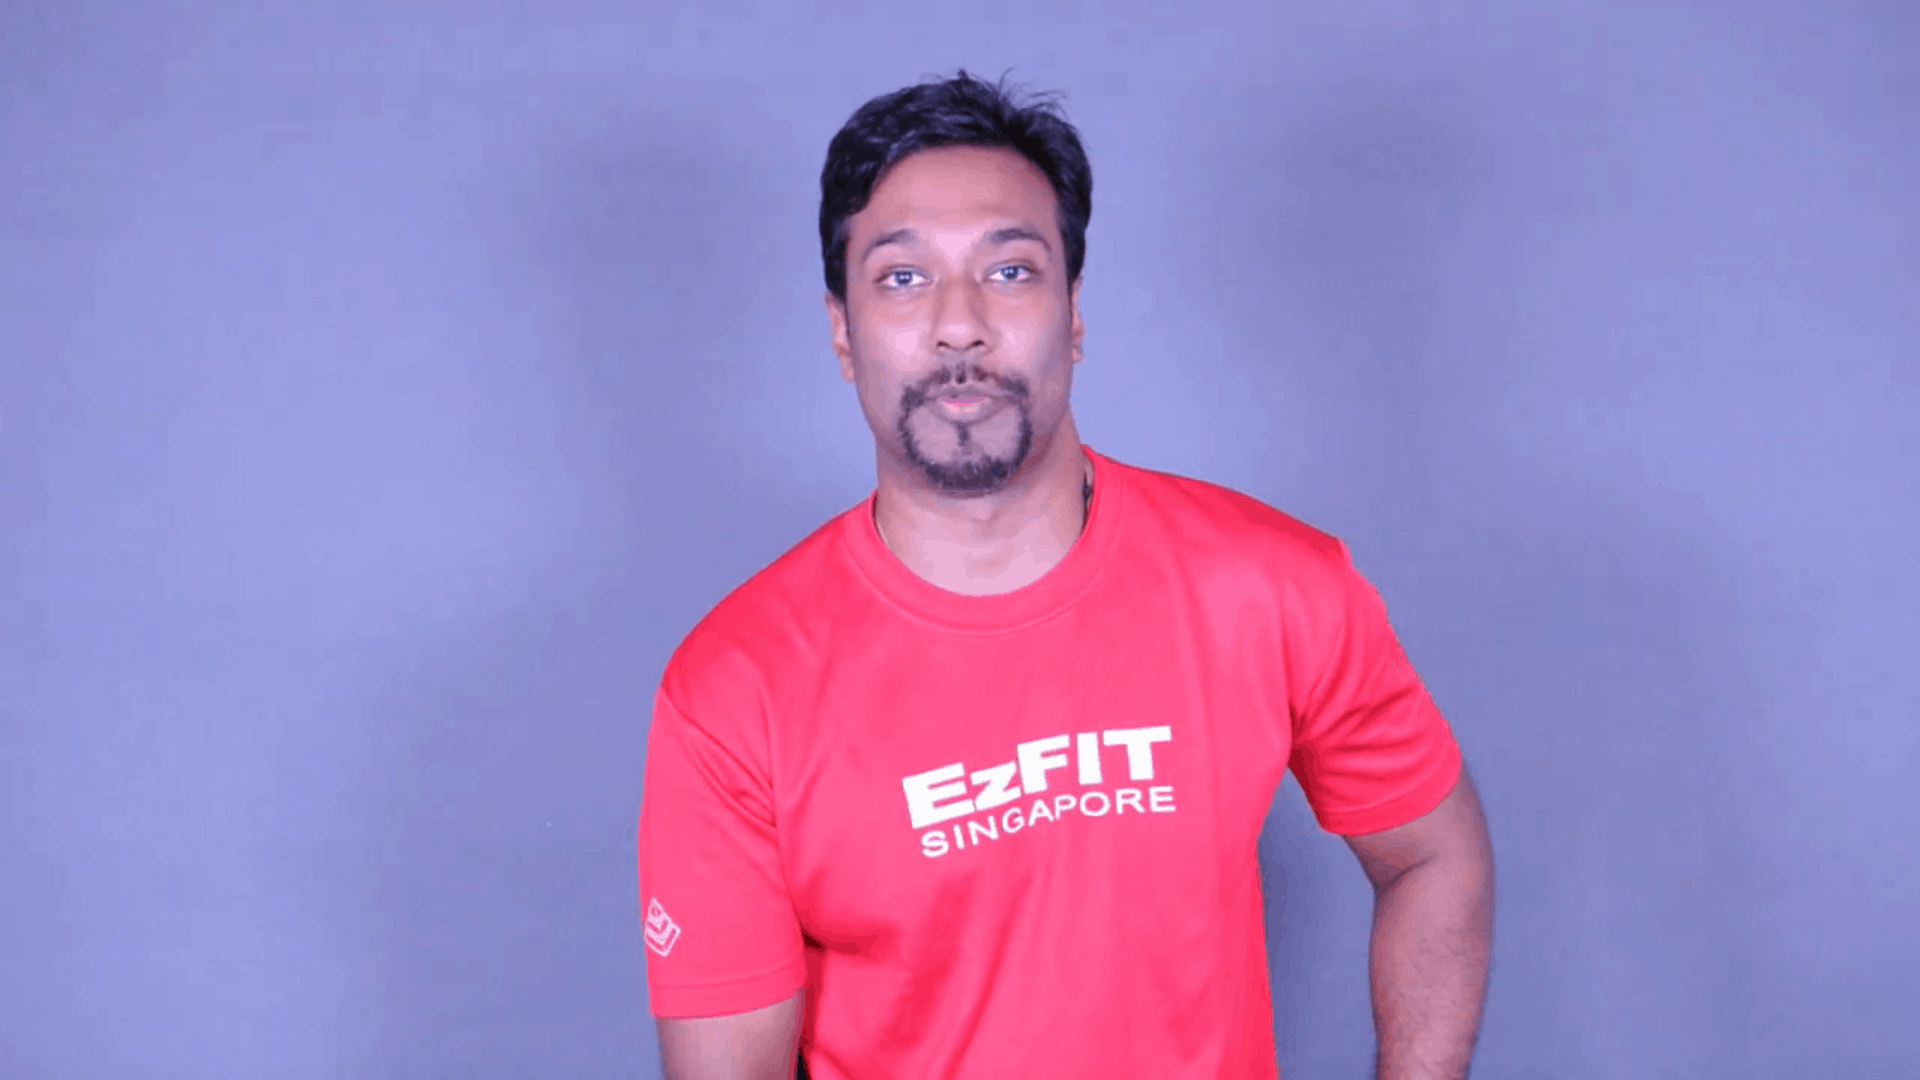 EzFIT Singapore Take 1-to-1 Personal Training - At Your Condo Gym